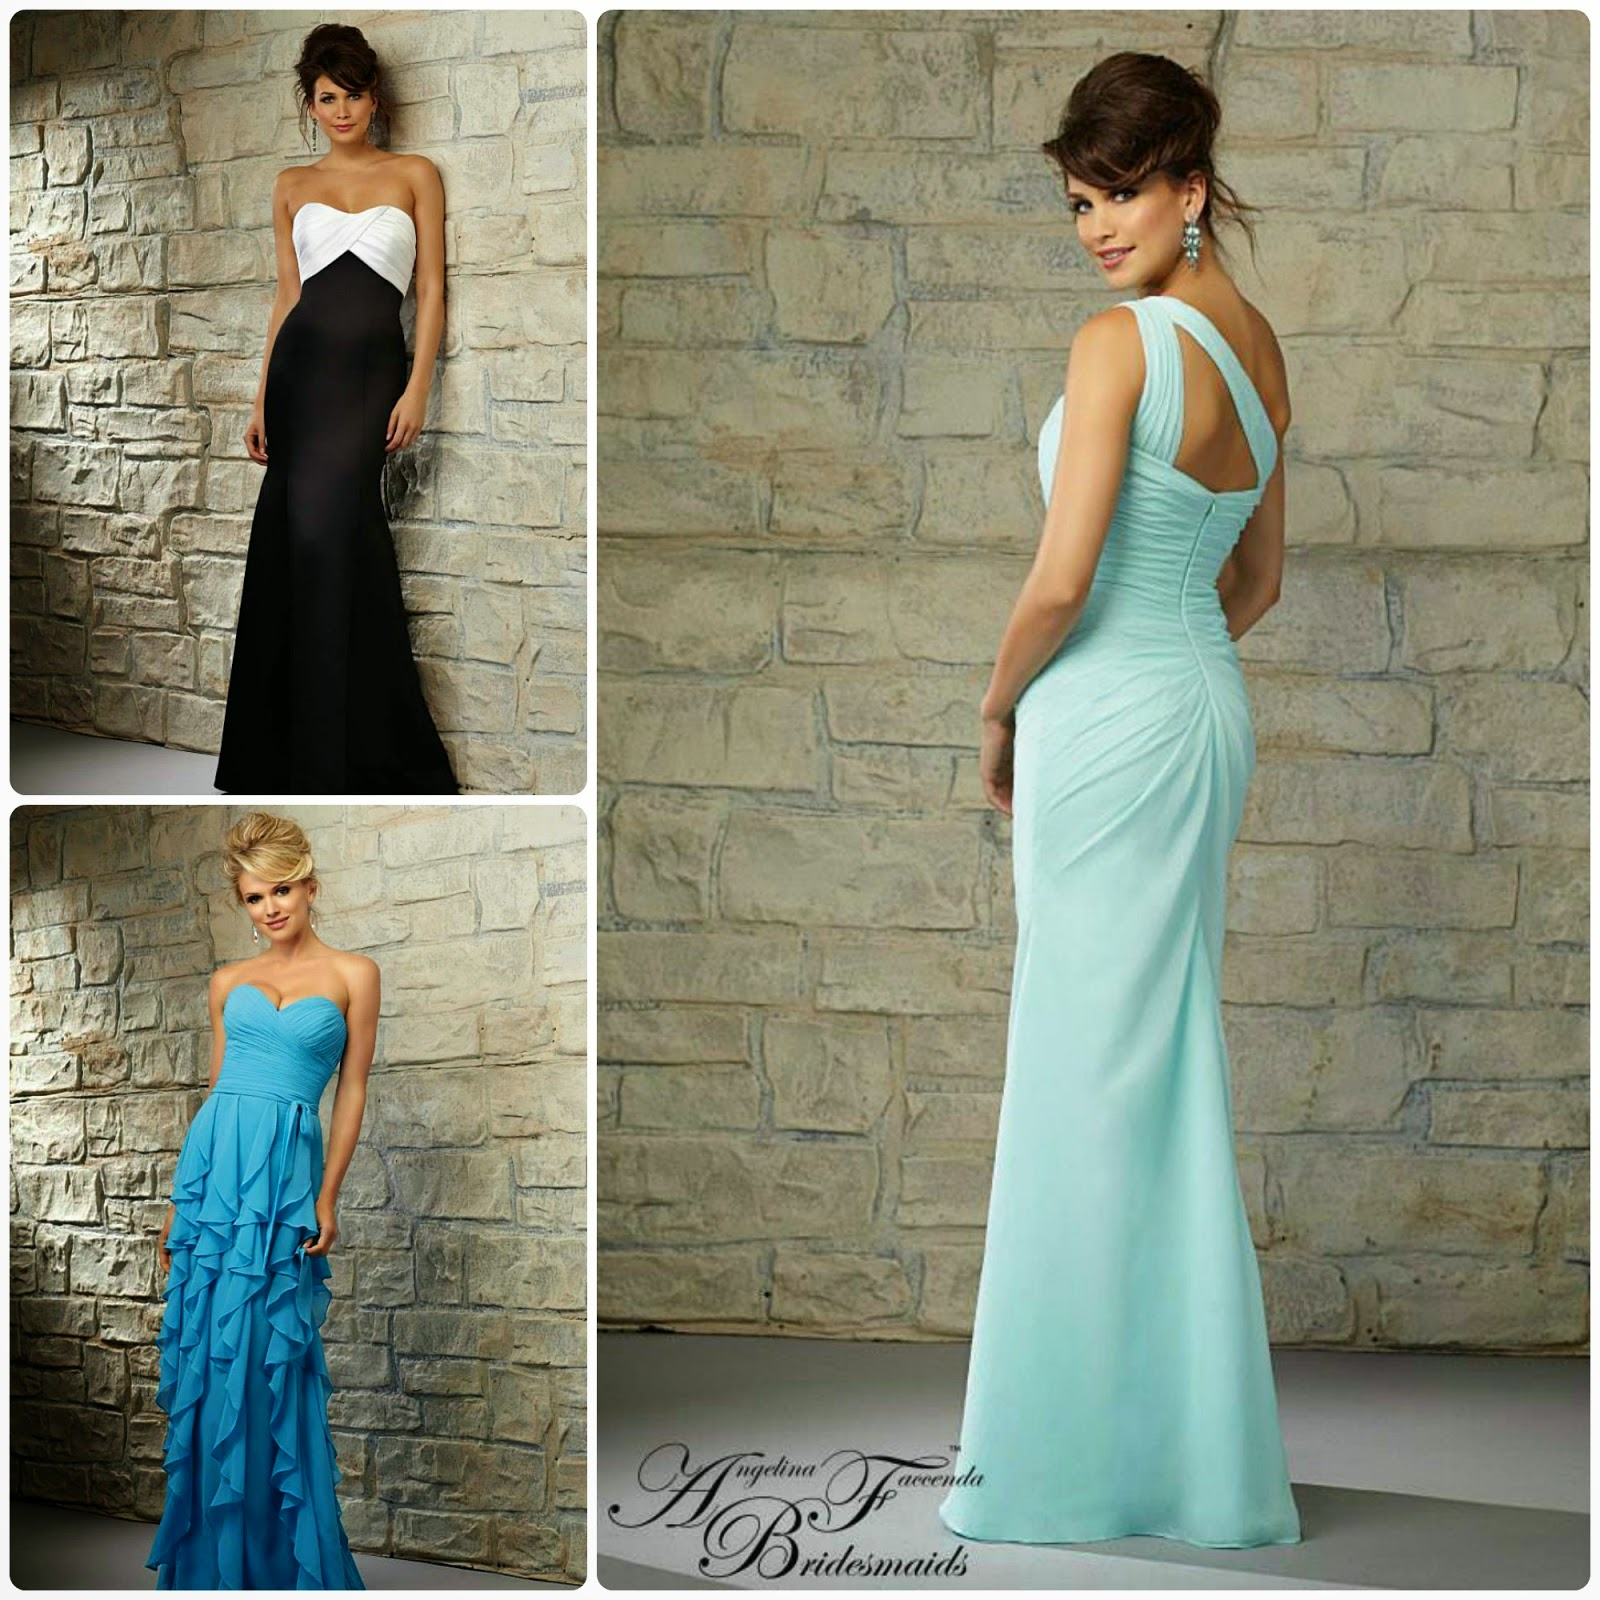 Bridesmaid Dresses Miami Stores 13